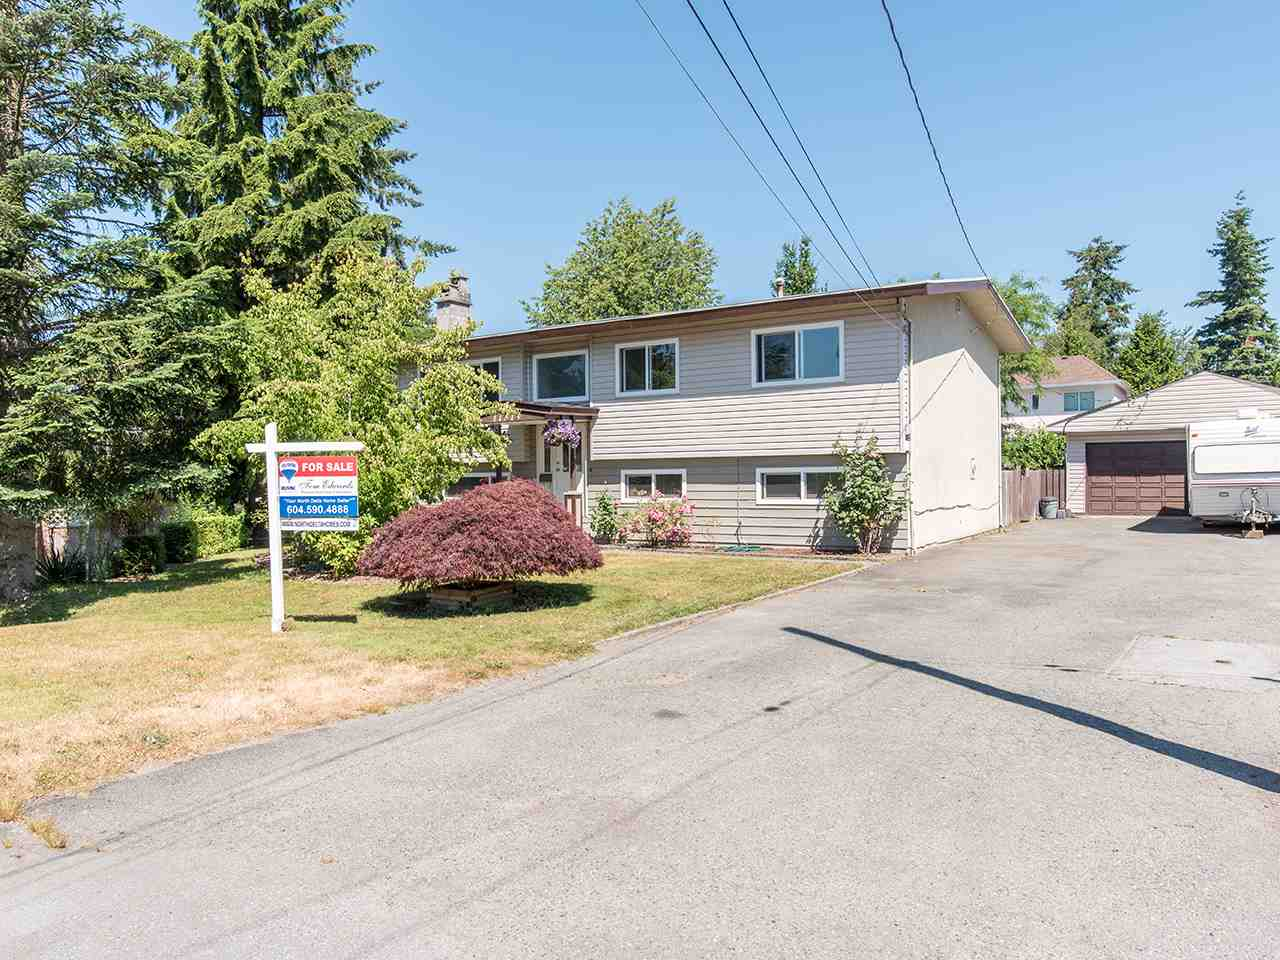 Detached at 11319 81A AVENUE, N. Delta, British Columbia. Image 1